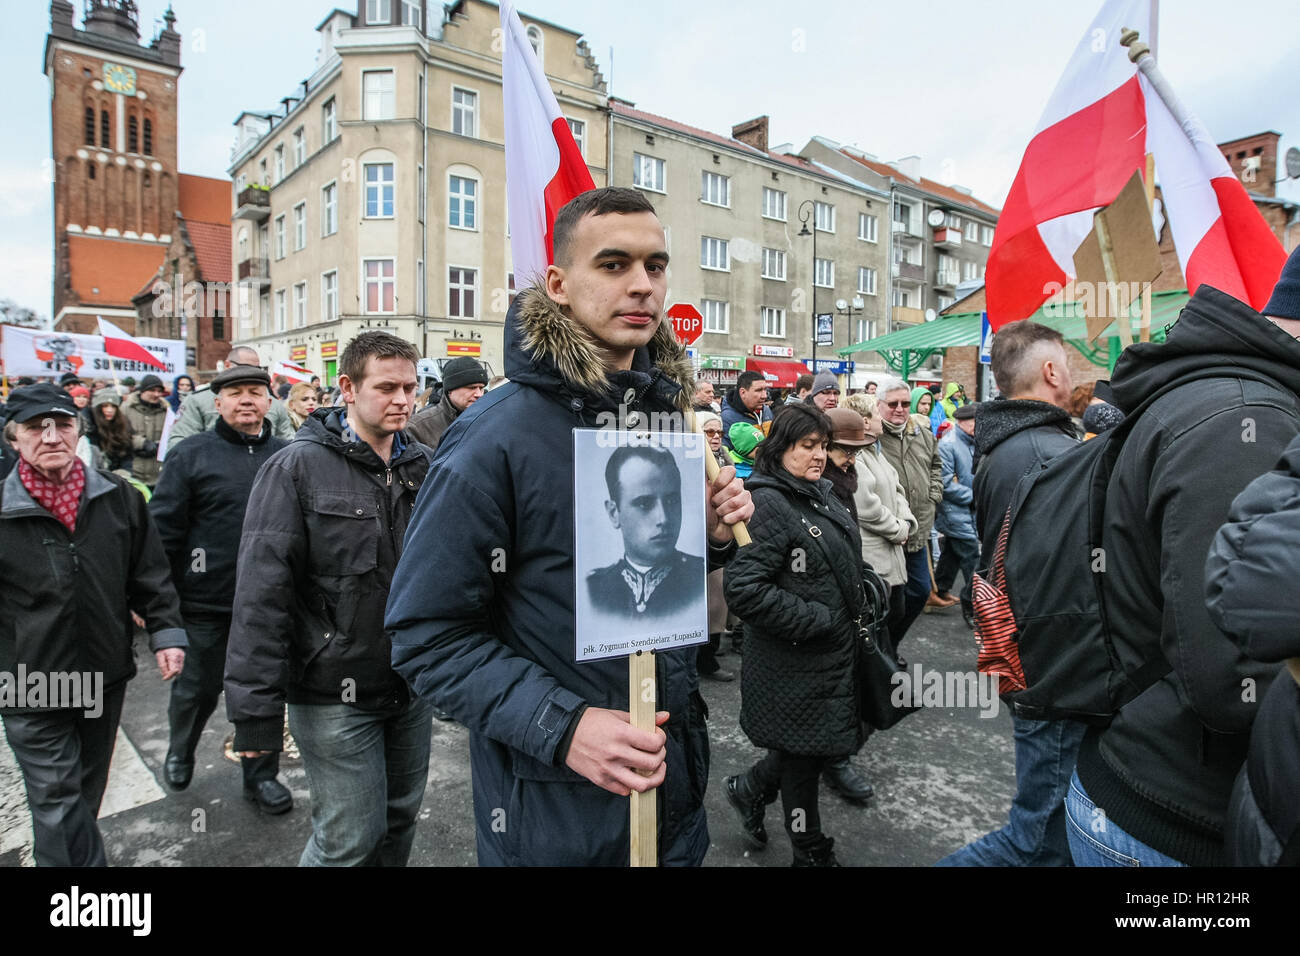 Gdansk, Poland. 26th February 2017. People with Cursed soldiers portraits are seen during the Cursed soldiers Day Stock Photo